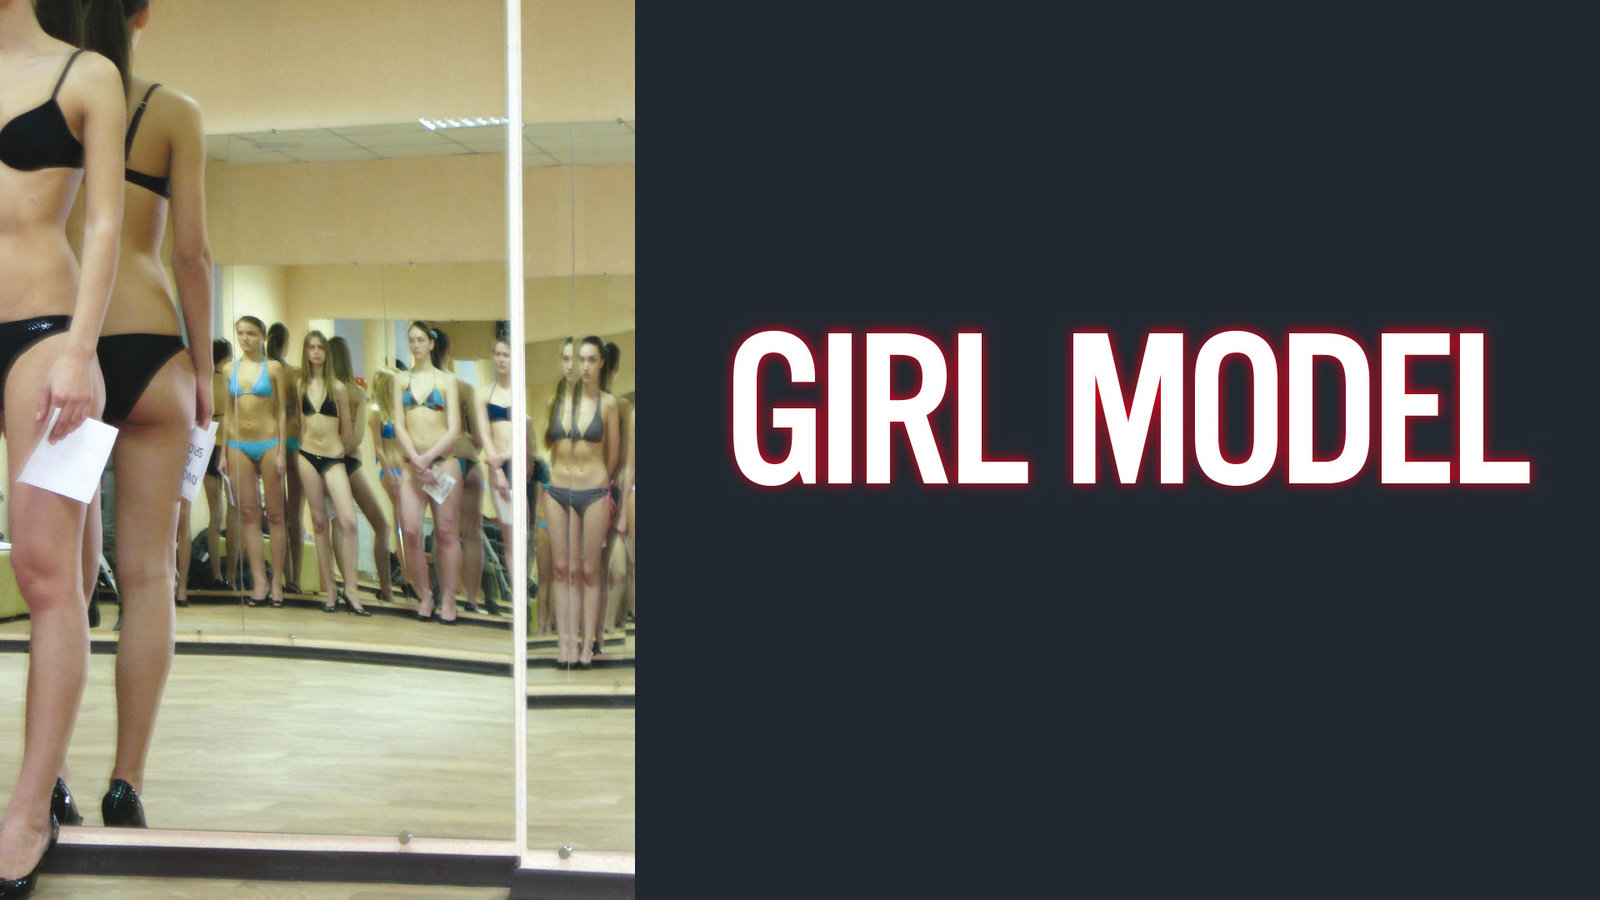 Girl Model - The Truth Behind the Glamour